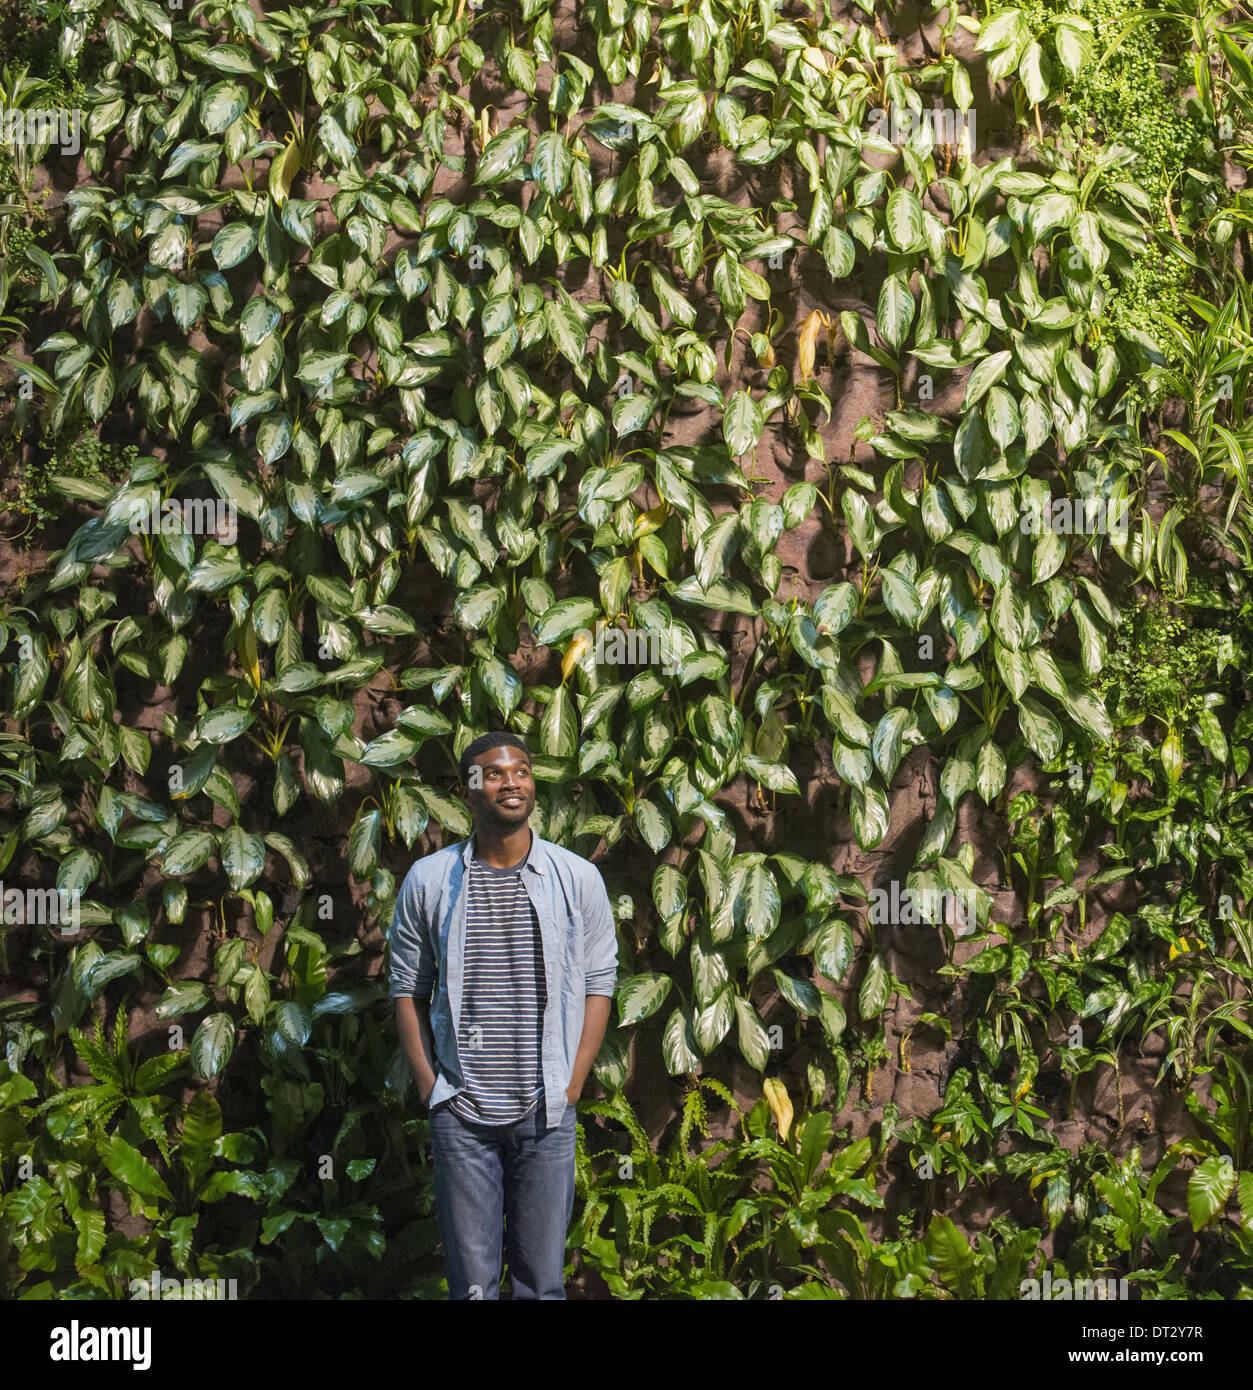 a man looking up at a high wall covered in climbing plants and foliage stock - Climbing Plants